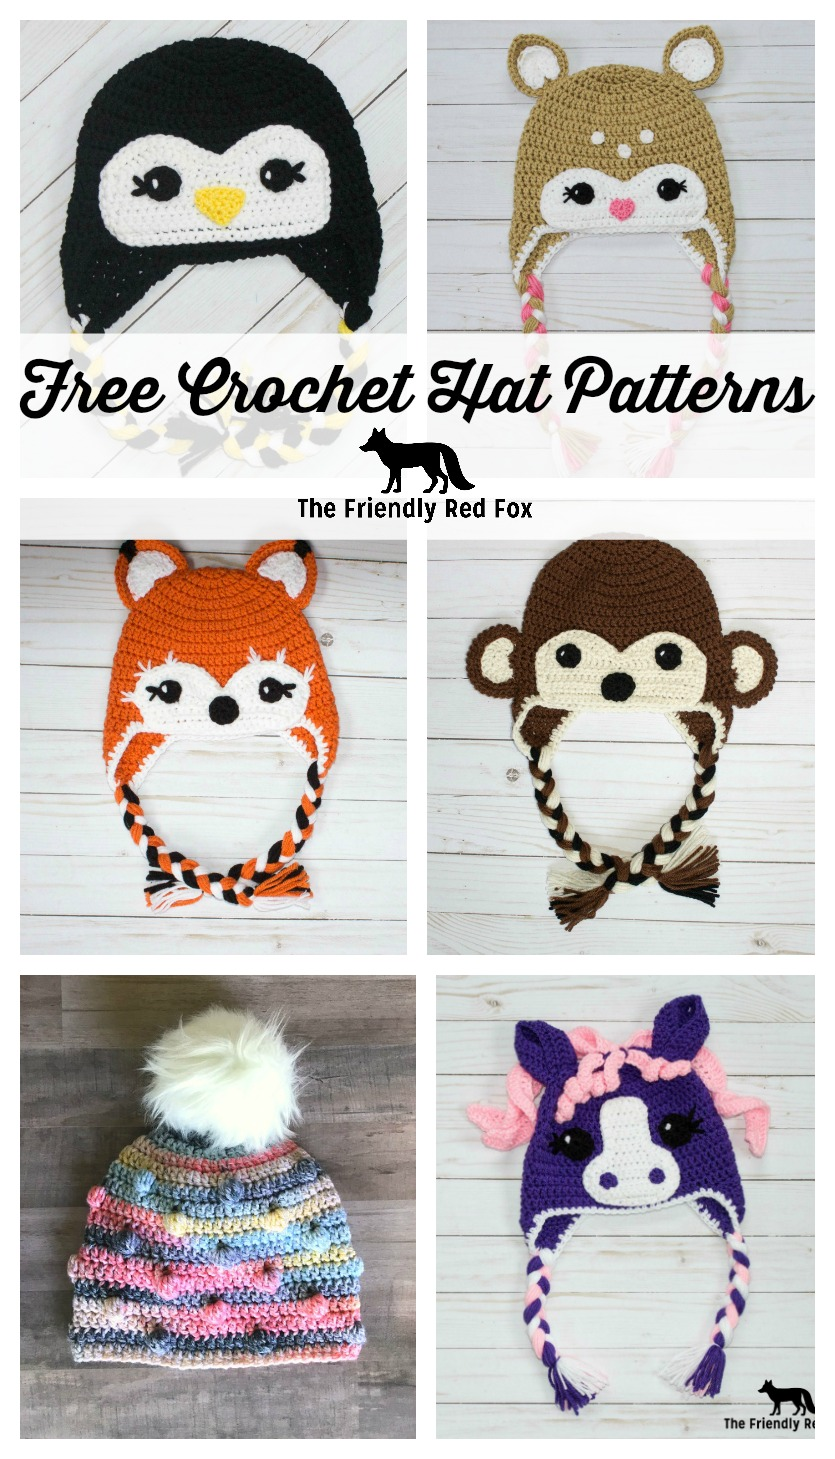 These free crochet hat patterns are suitable for a beginner so you can make one for kids, for adults, boys or girls! Find the perfect one as a gift this holiday season! These character hats also do really well at craft fairs! #crochethat #crochet #kidshat #characterhat #freecrochetpattern